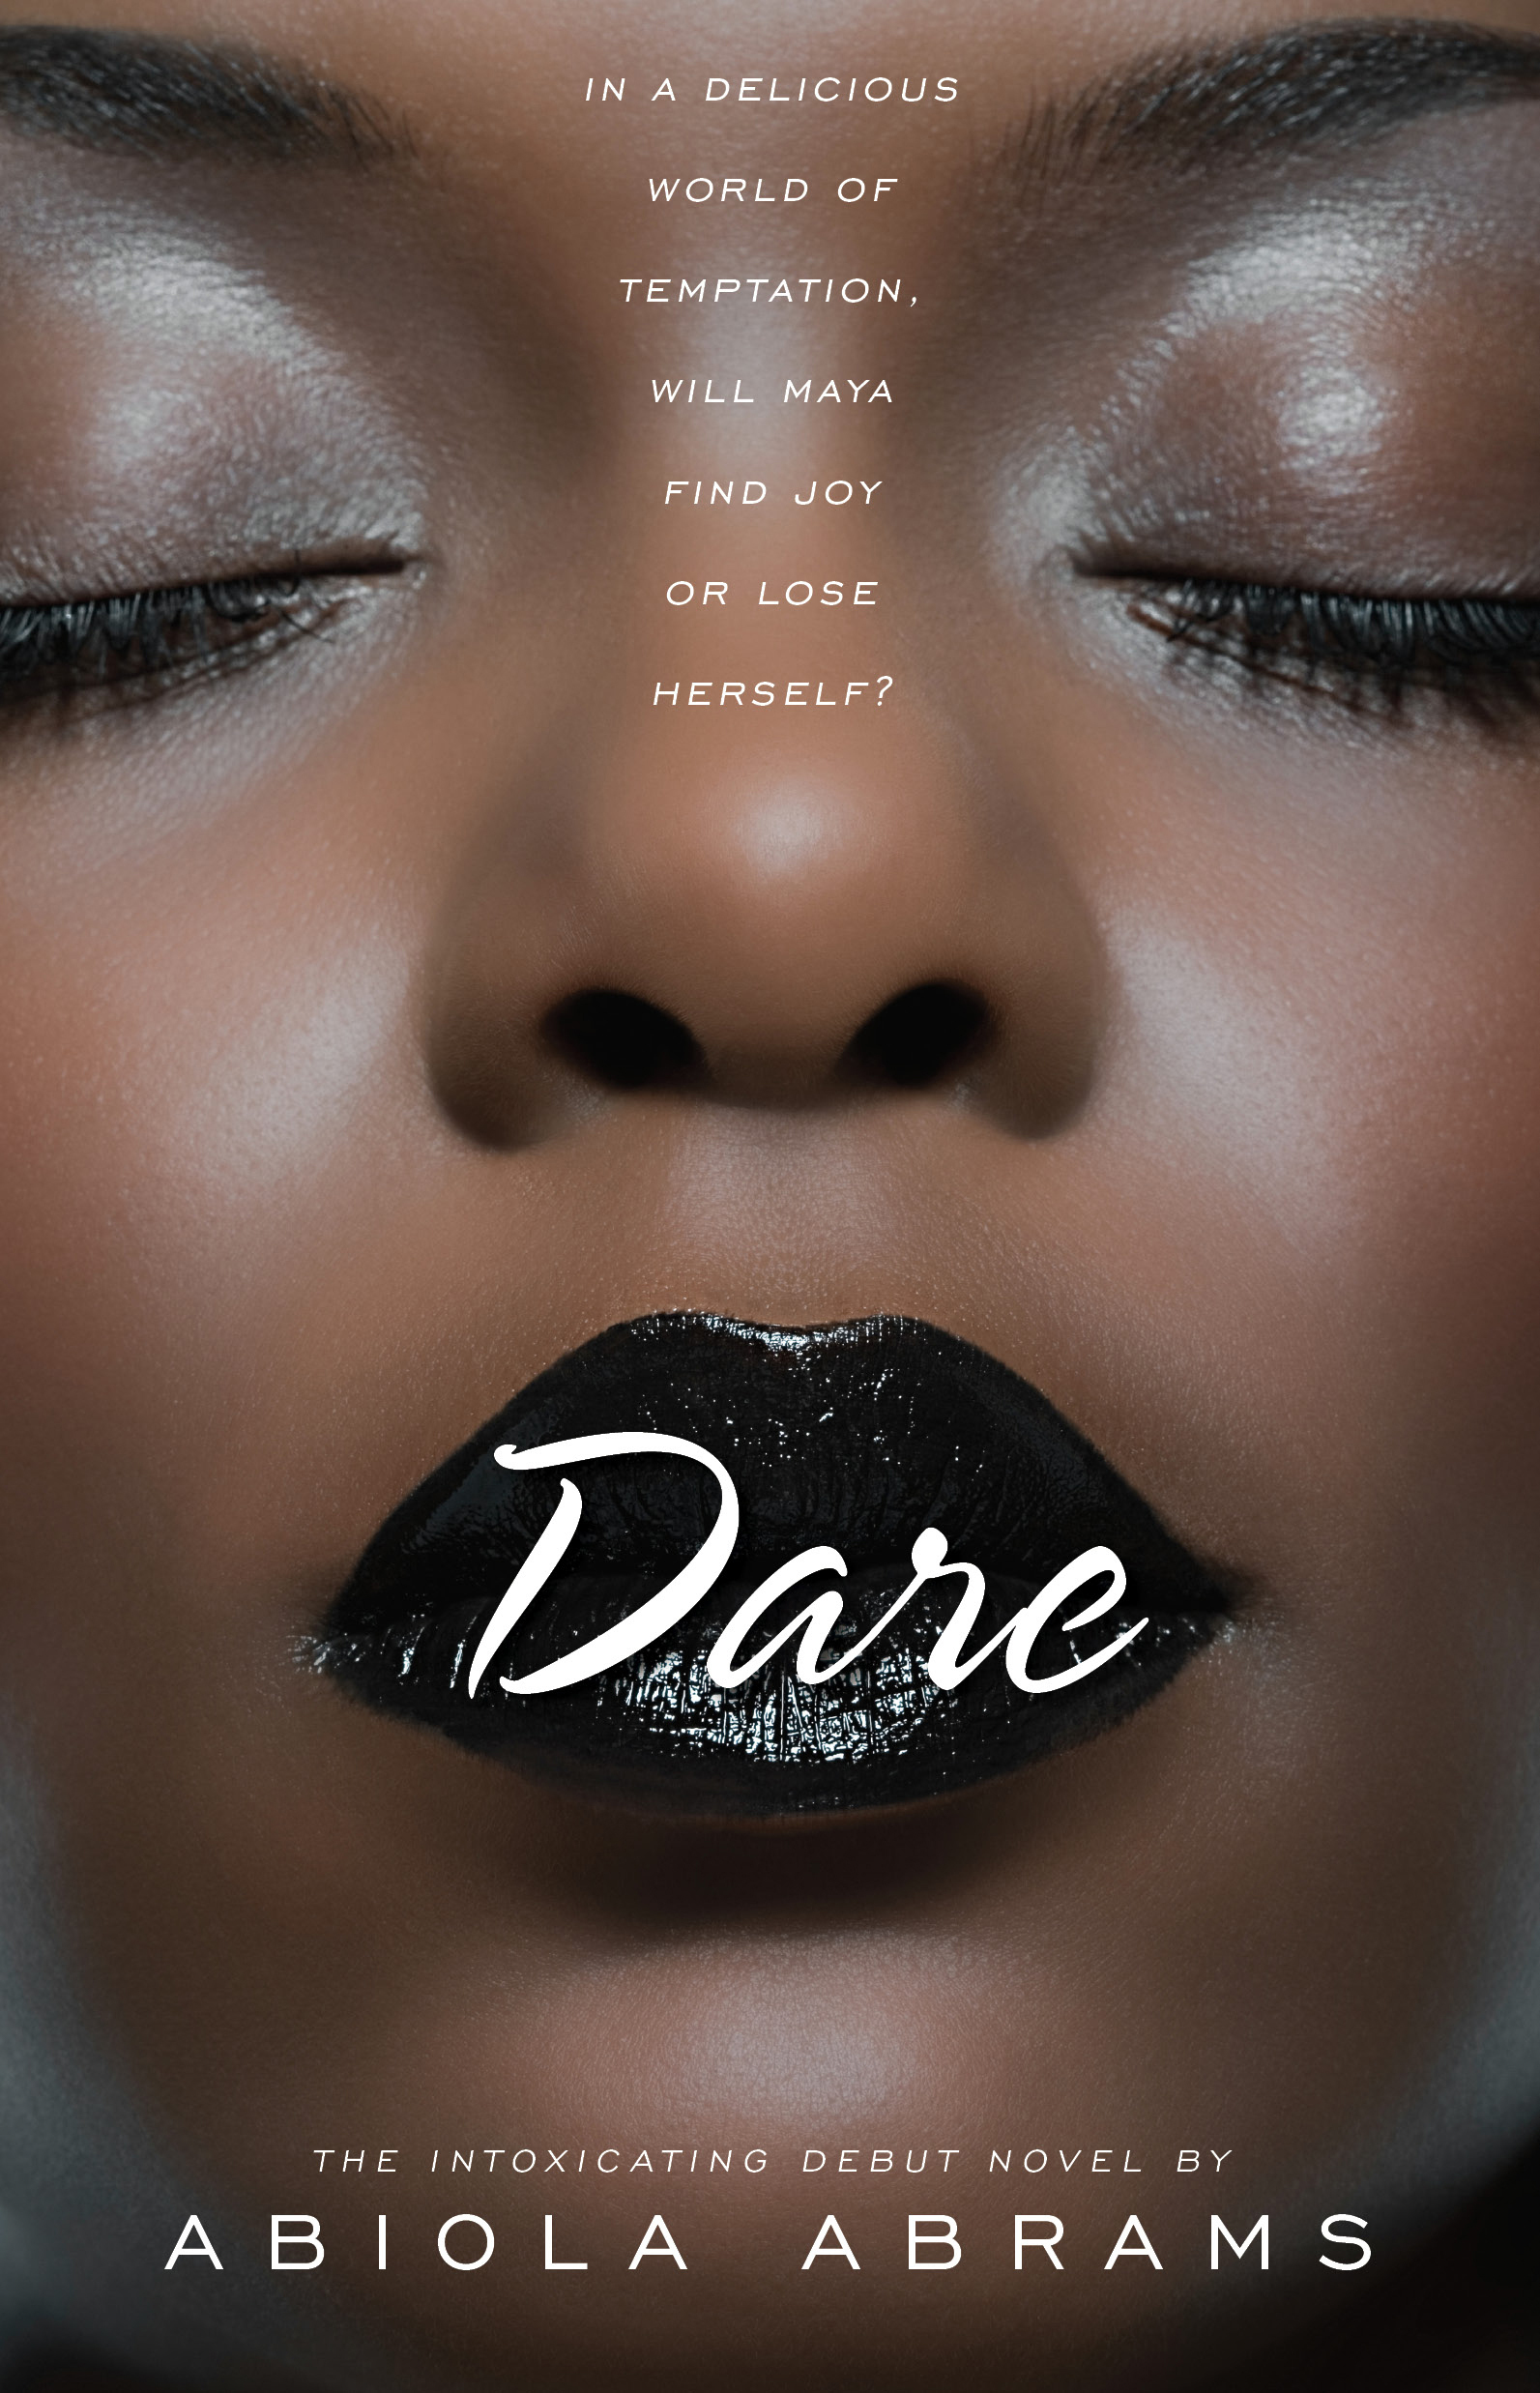 Dare: A Novel by Lifestyle Expert Abiola Abrams